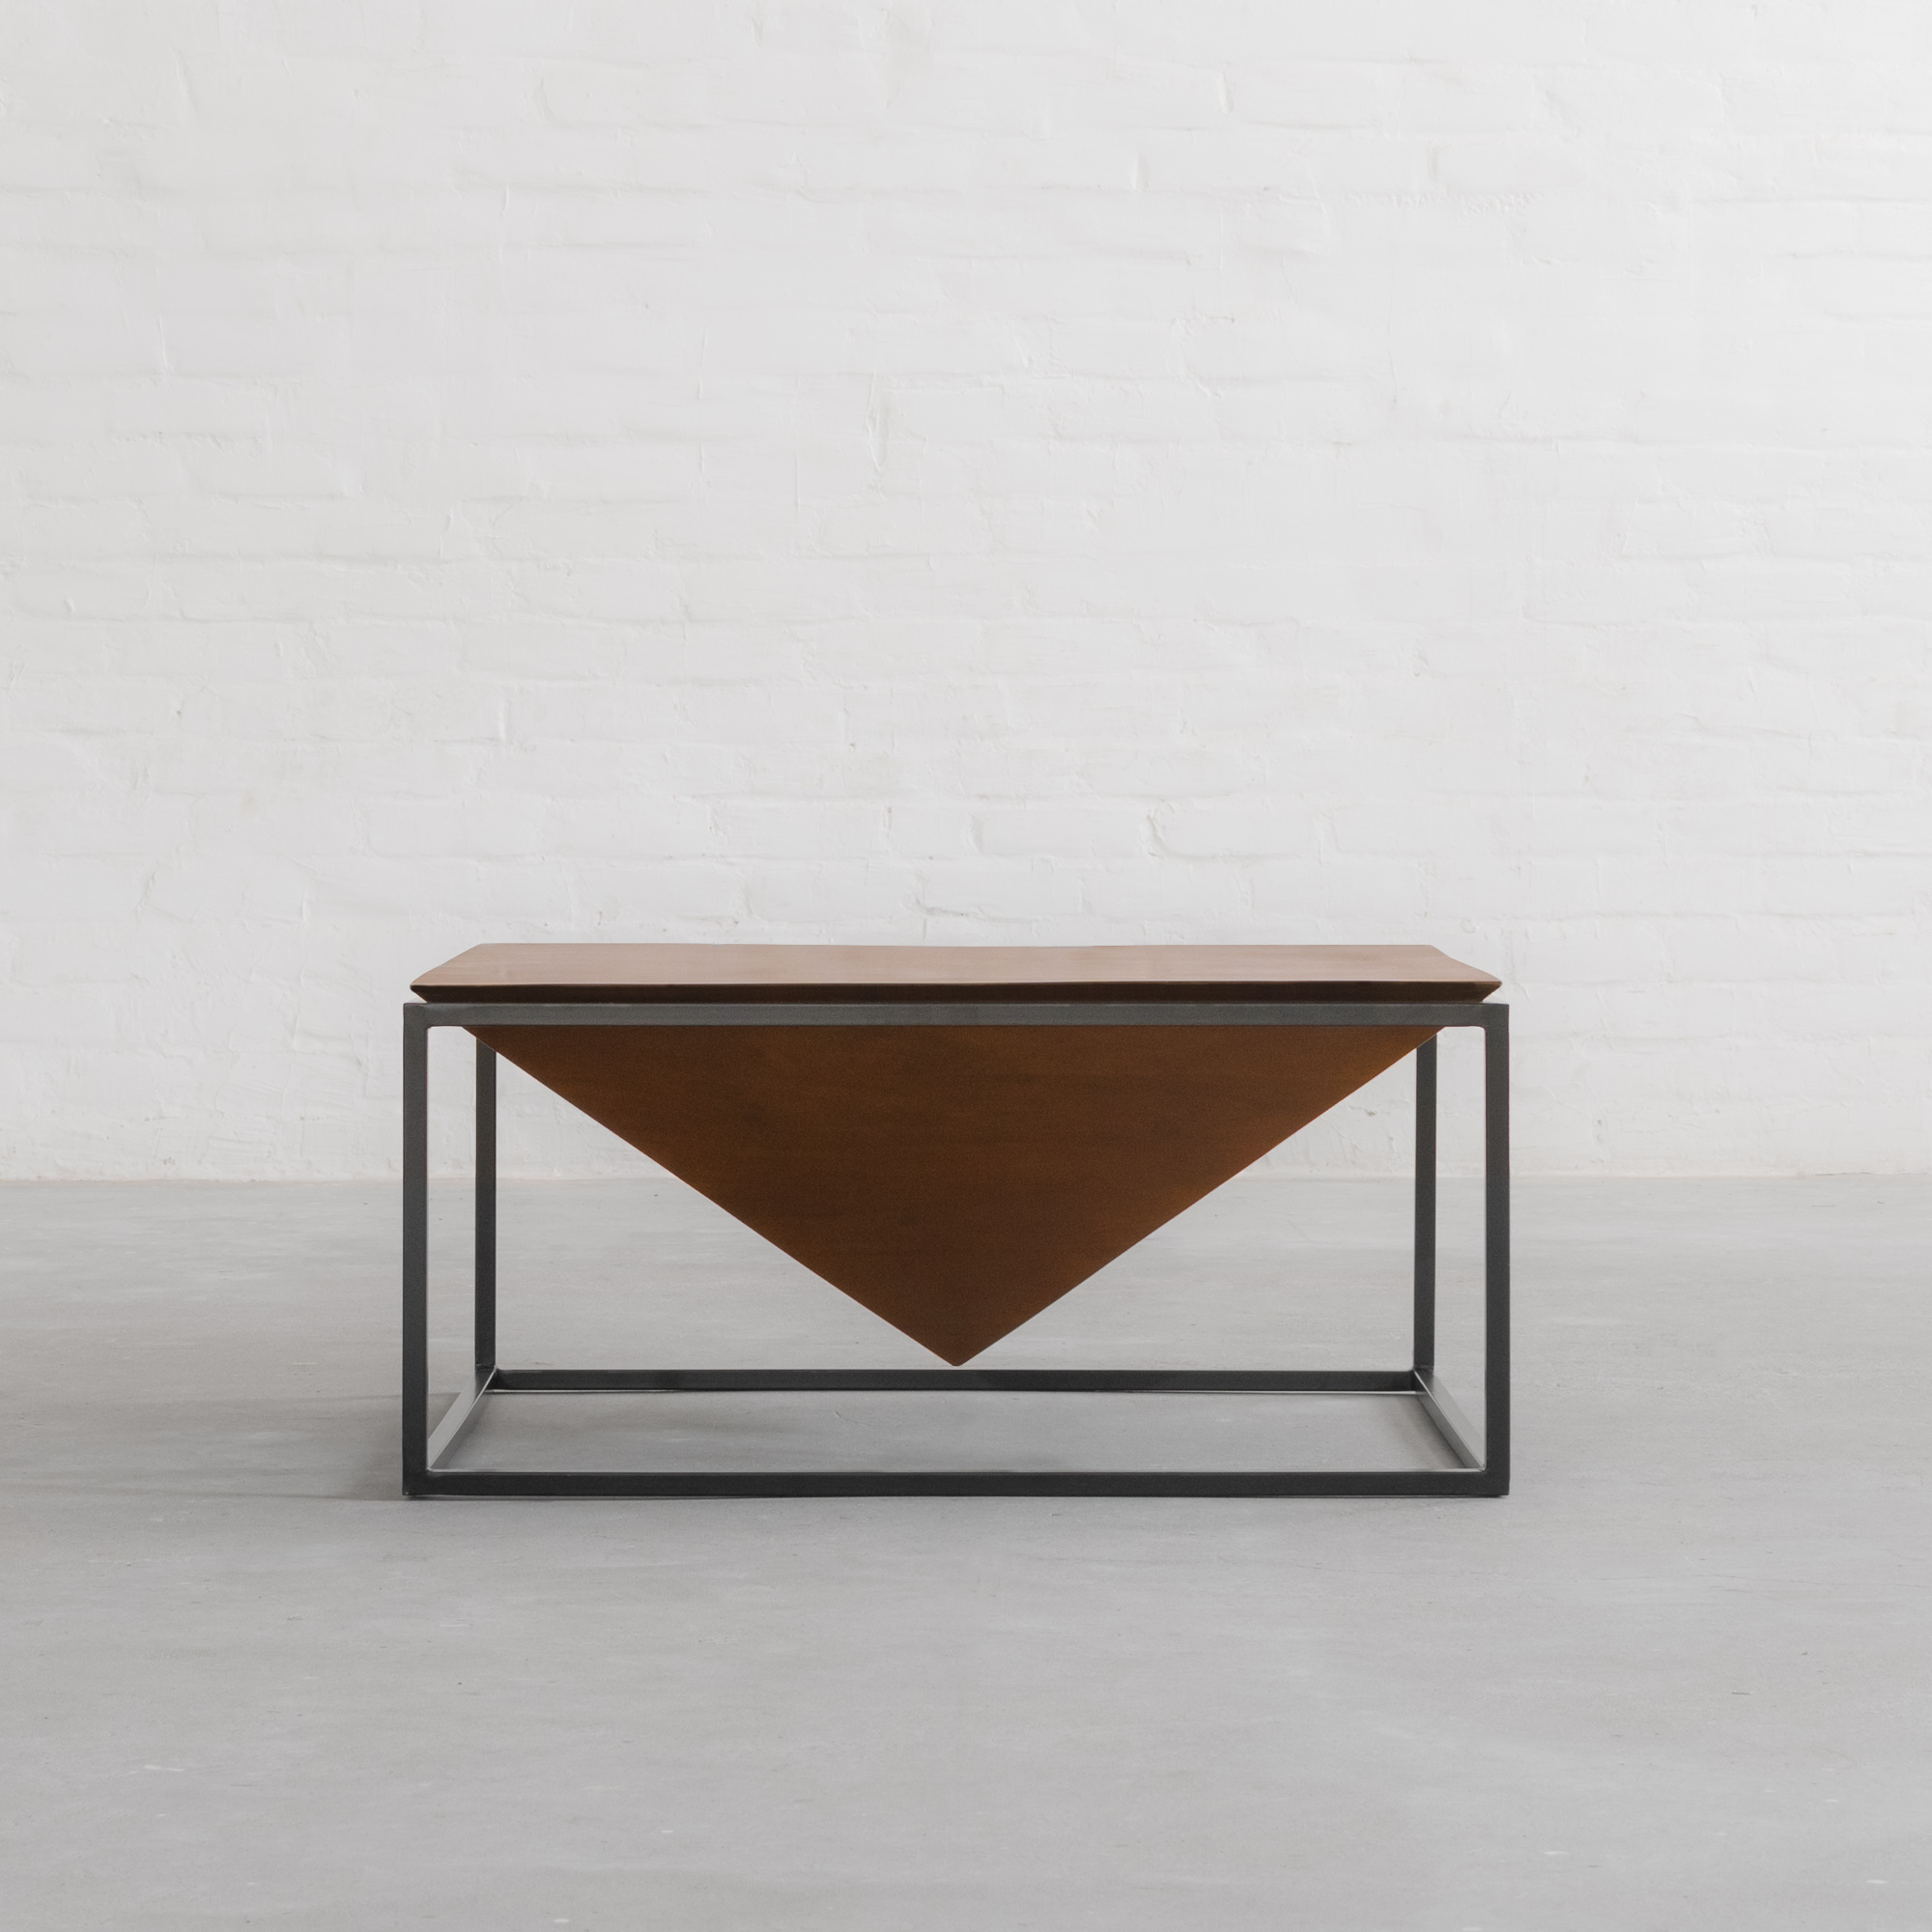 Fashionable Louvre Coffee Table Inside Inverted Triangle Coffee Tables (Gallery 2 of 20)